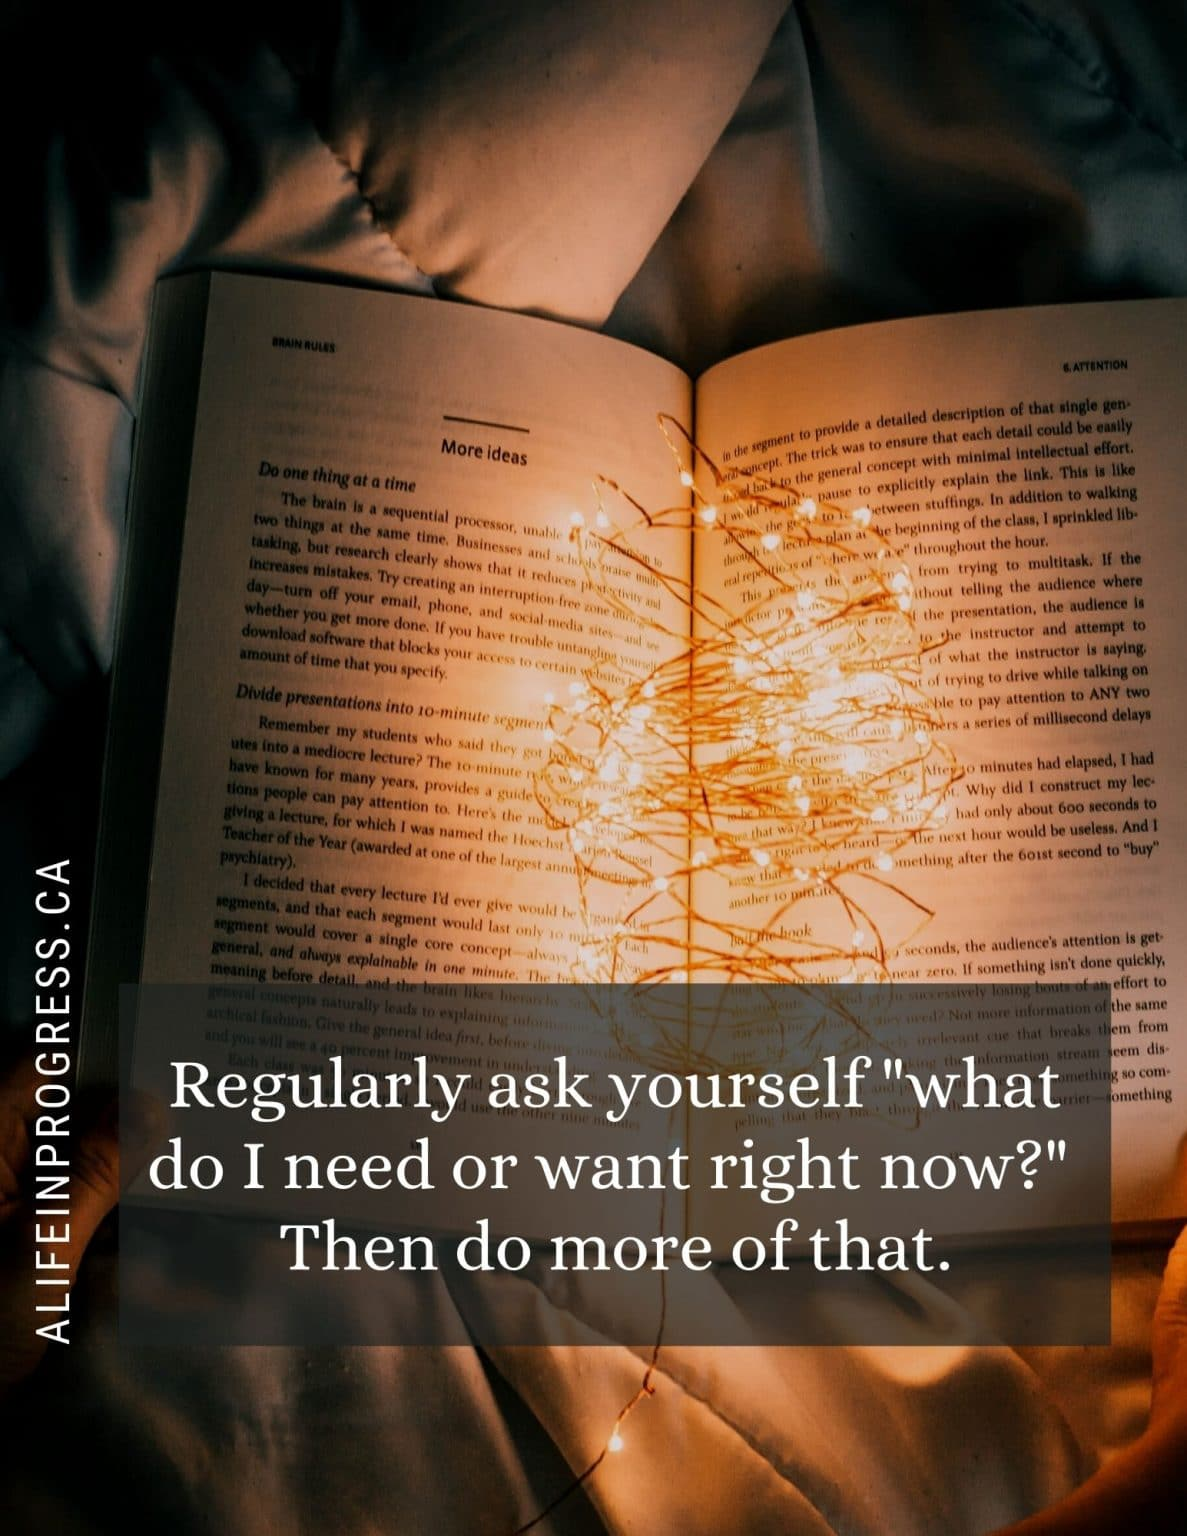 Ask yourself what you want or need right now.